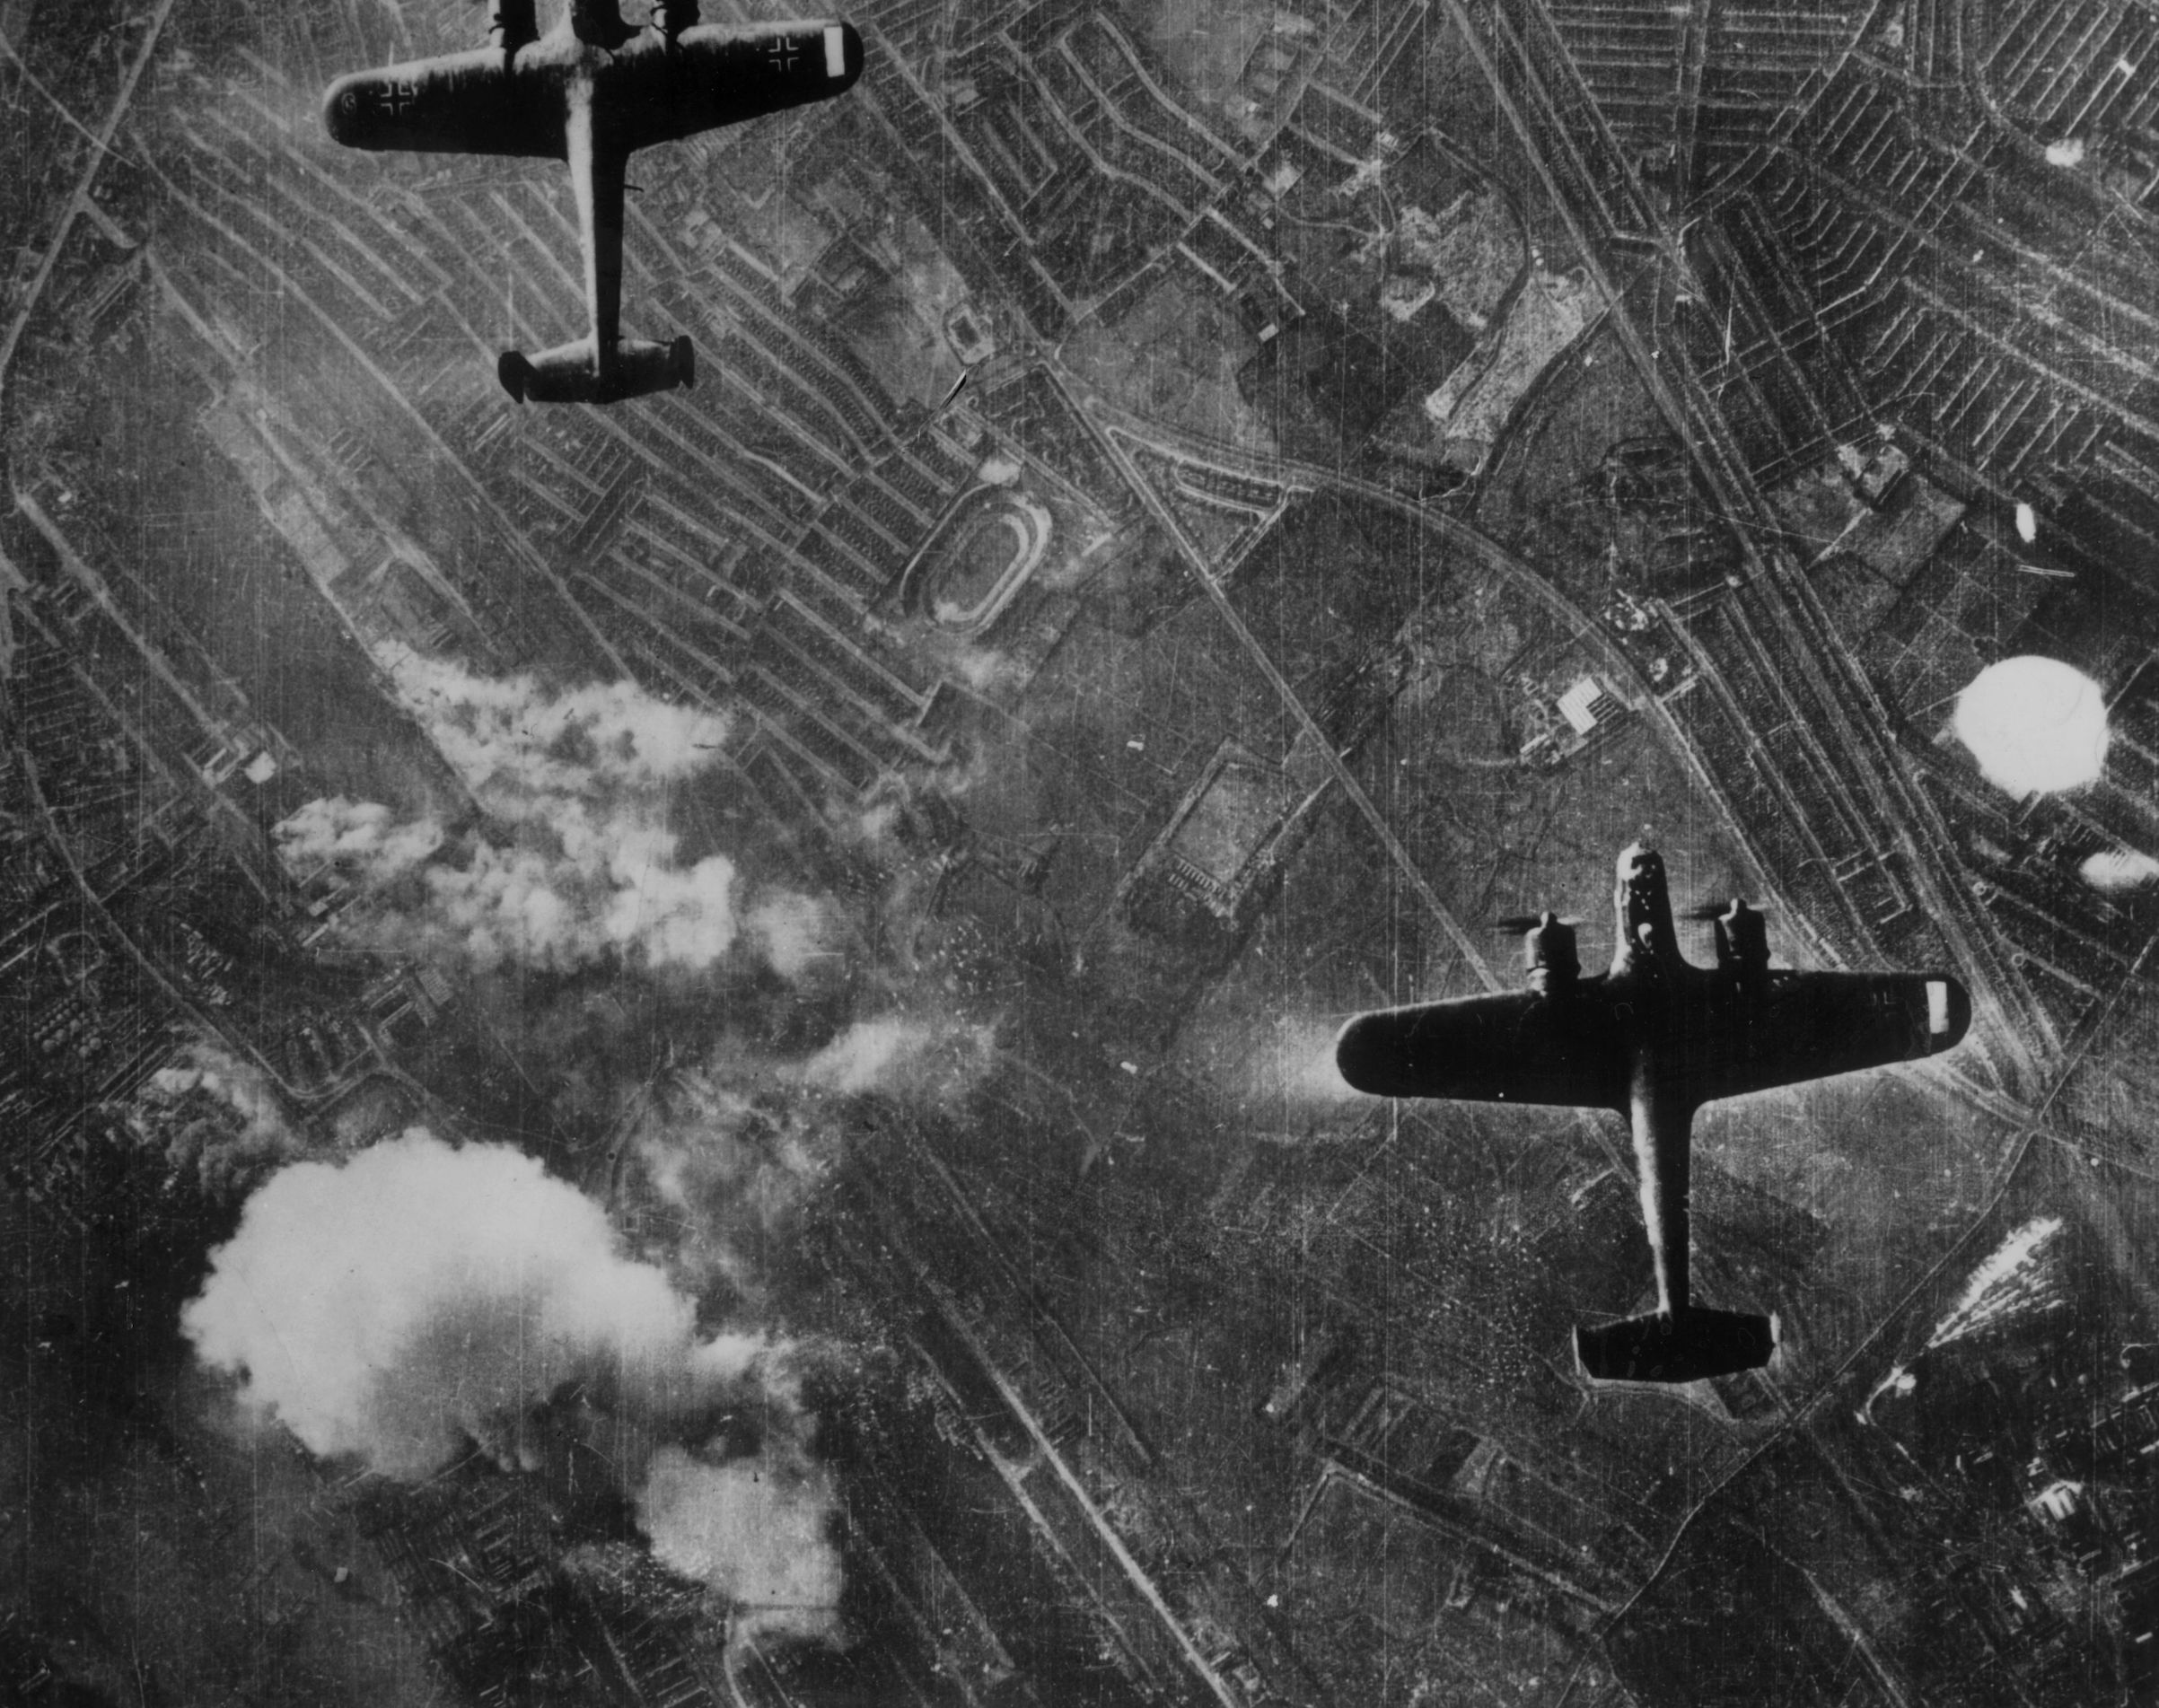 Two Luftwaffe Dornier 217 twin-engined medium bombers flying over the Silvertown area of London's Docklands on Sept. 7, 1940 at the beginning of the Blitz on London.